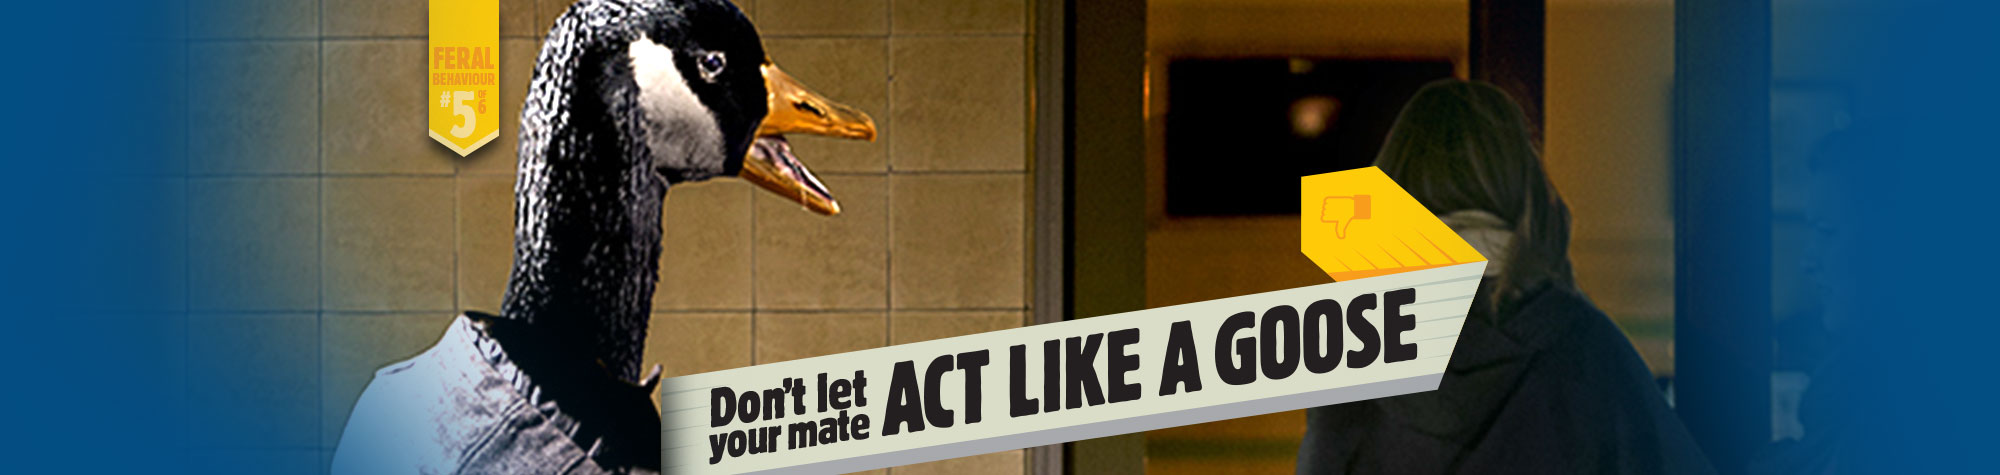 Don't let your mate act like a goose